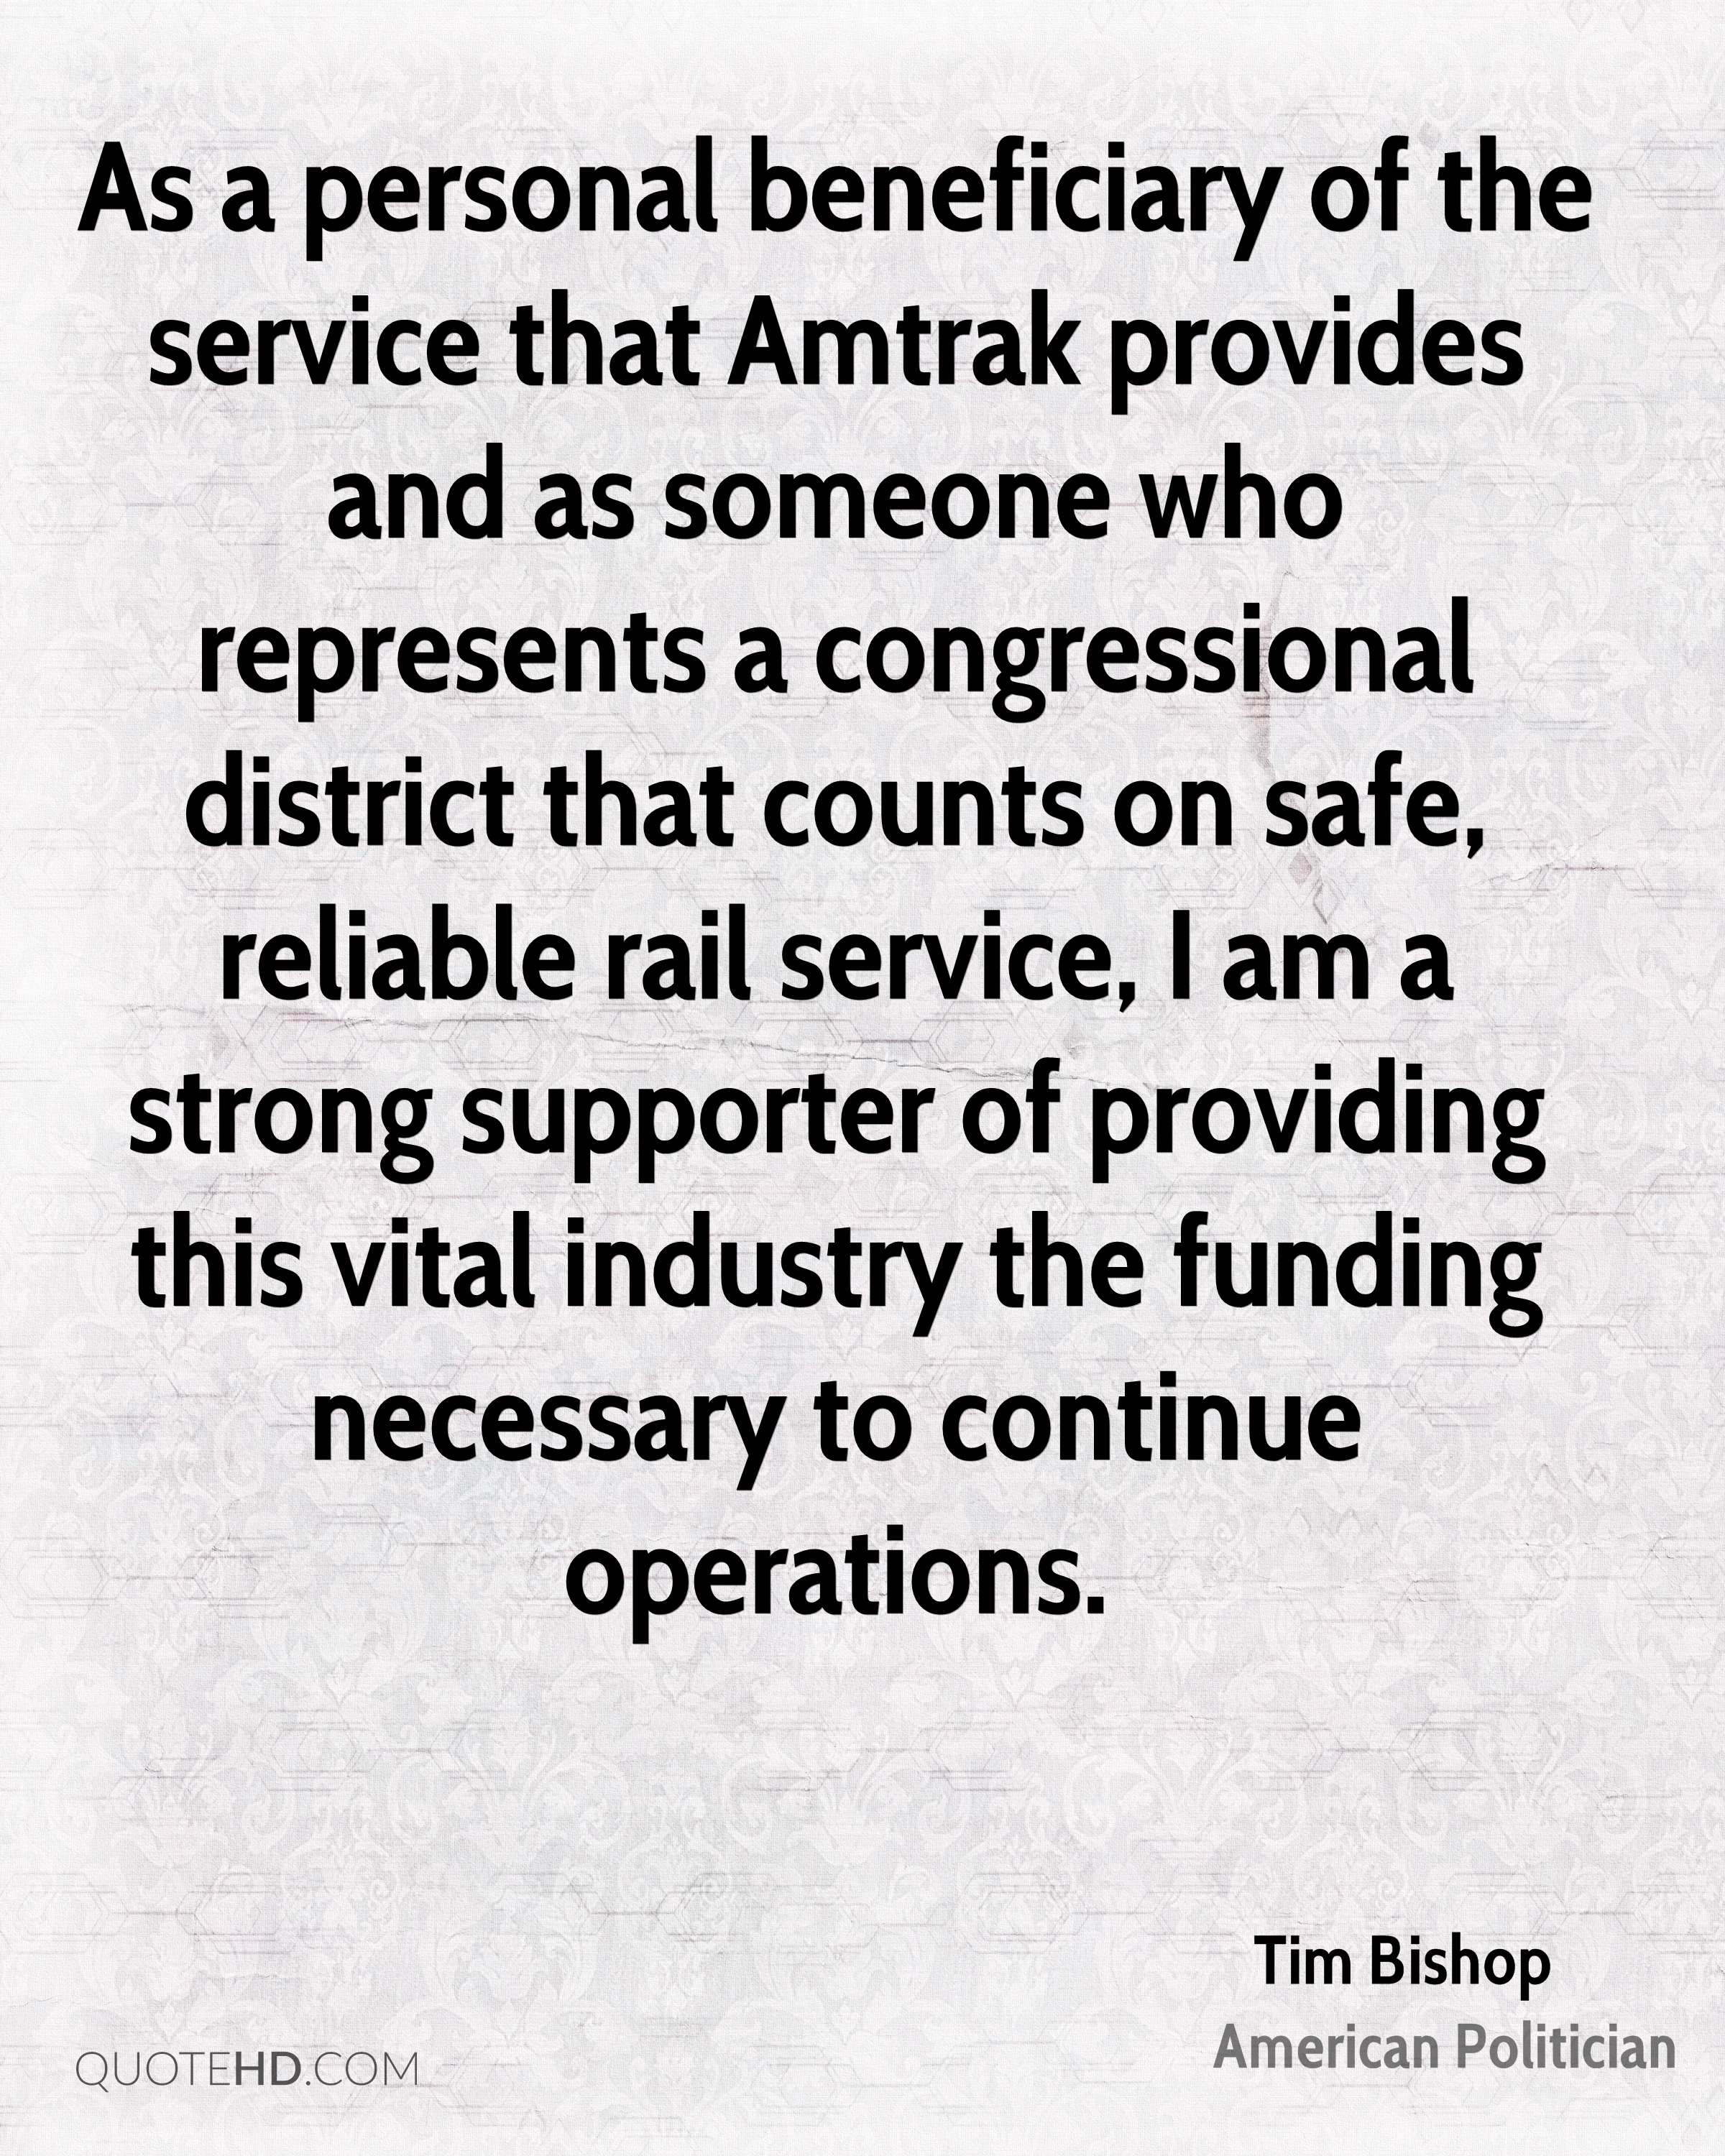 As a personal beneficiary of the service that Amtrak provides and as someone who represents a congressional district that counts on safe, reliable rail service, I am a strong supporter of providing this vital industry the funding necessary to continue operations.